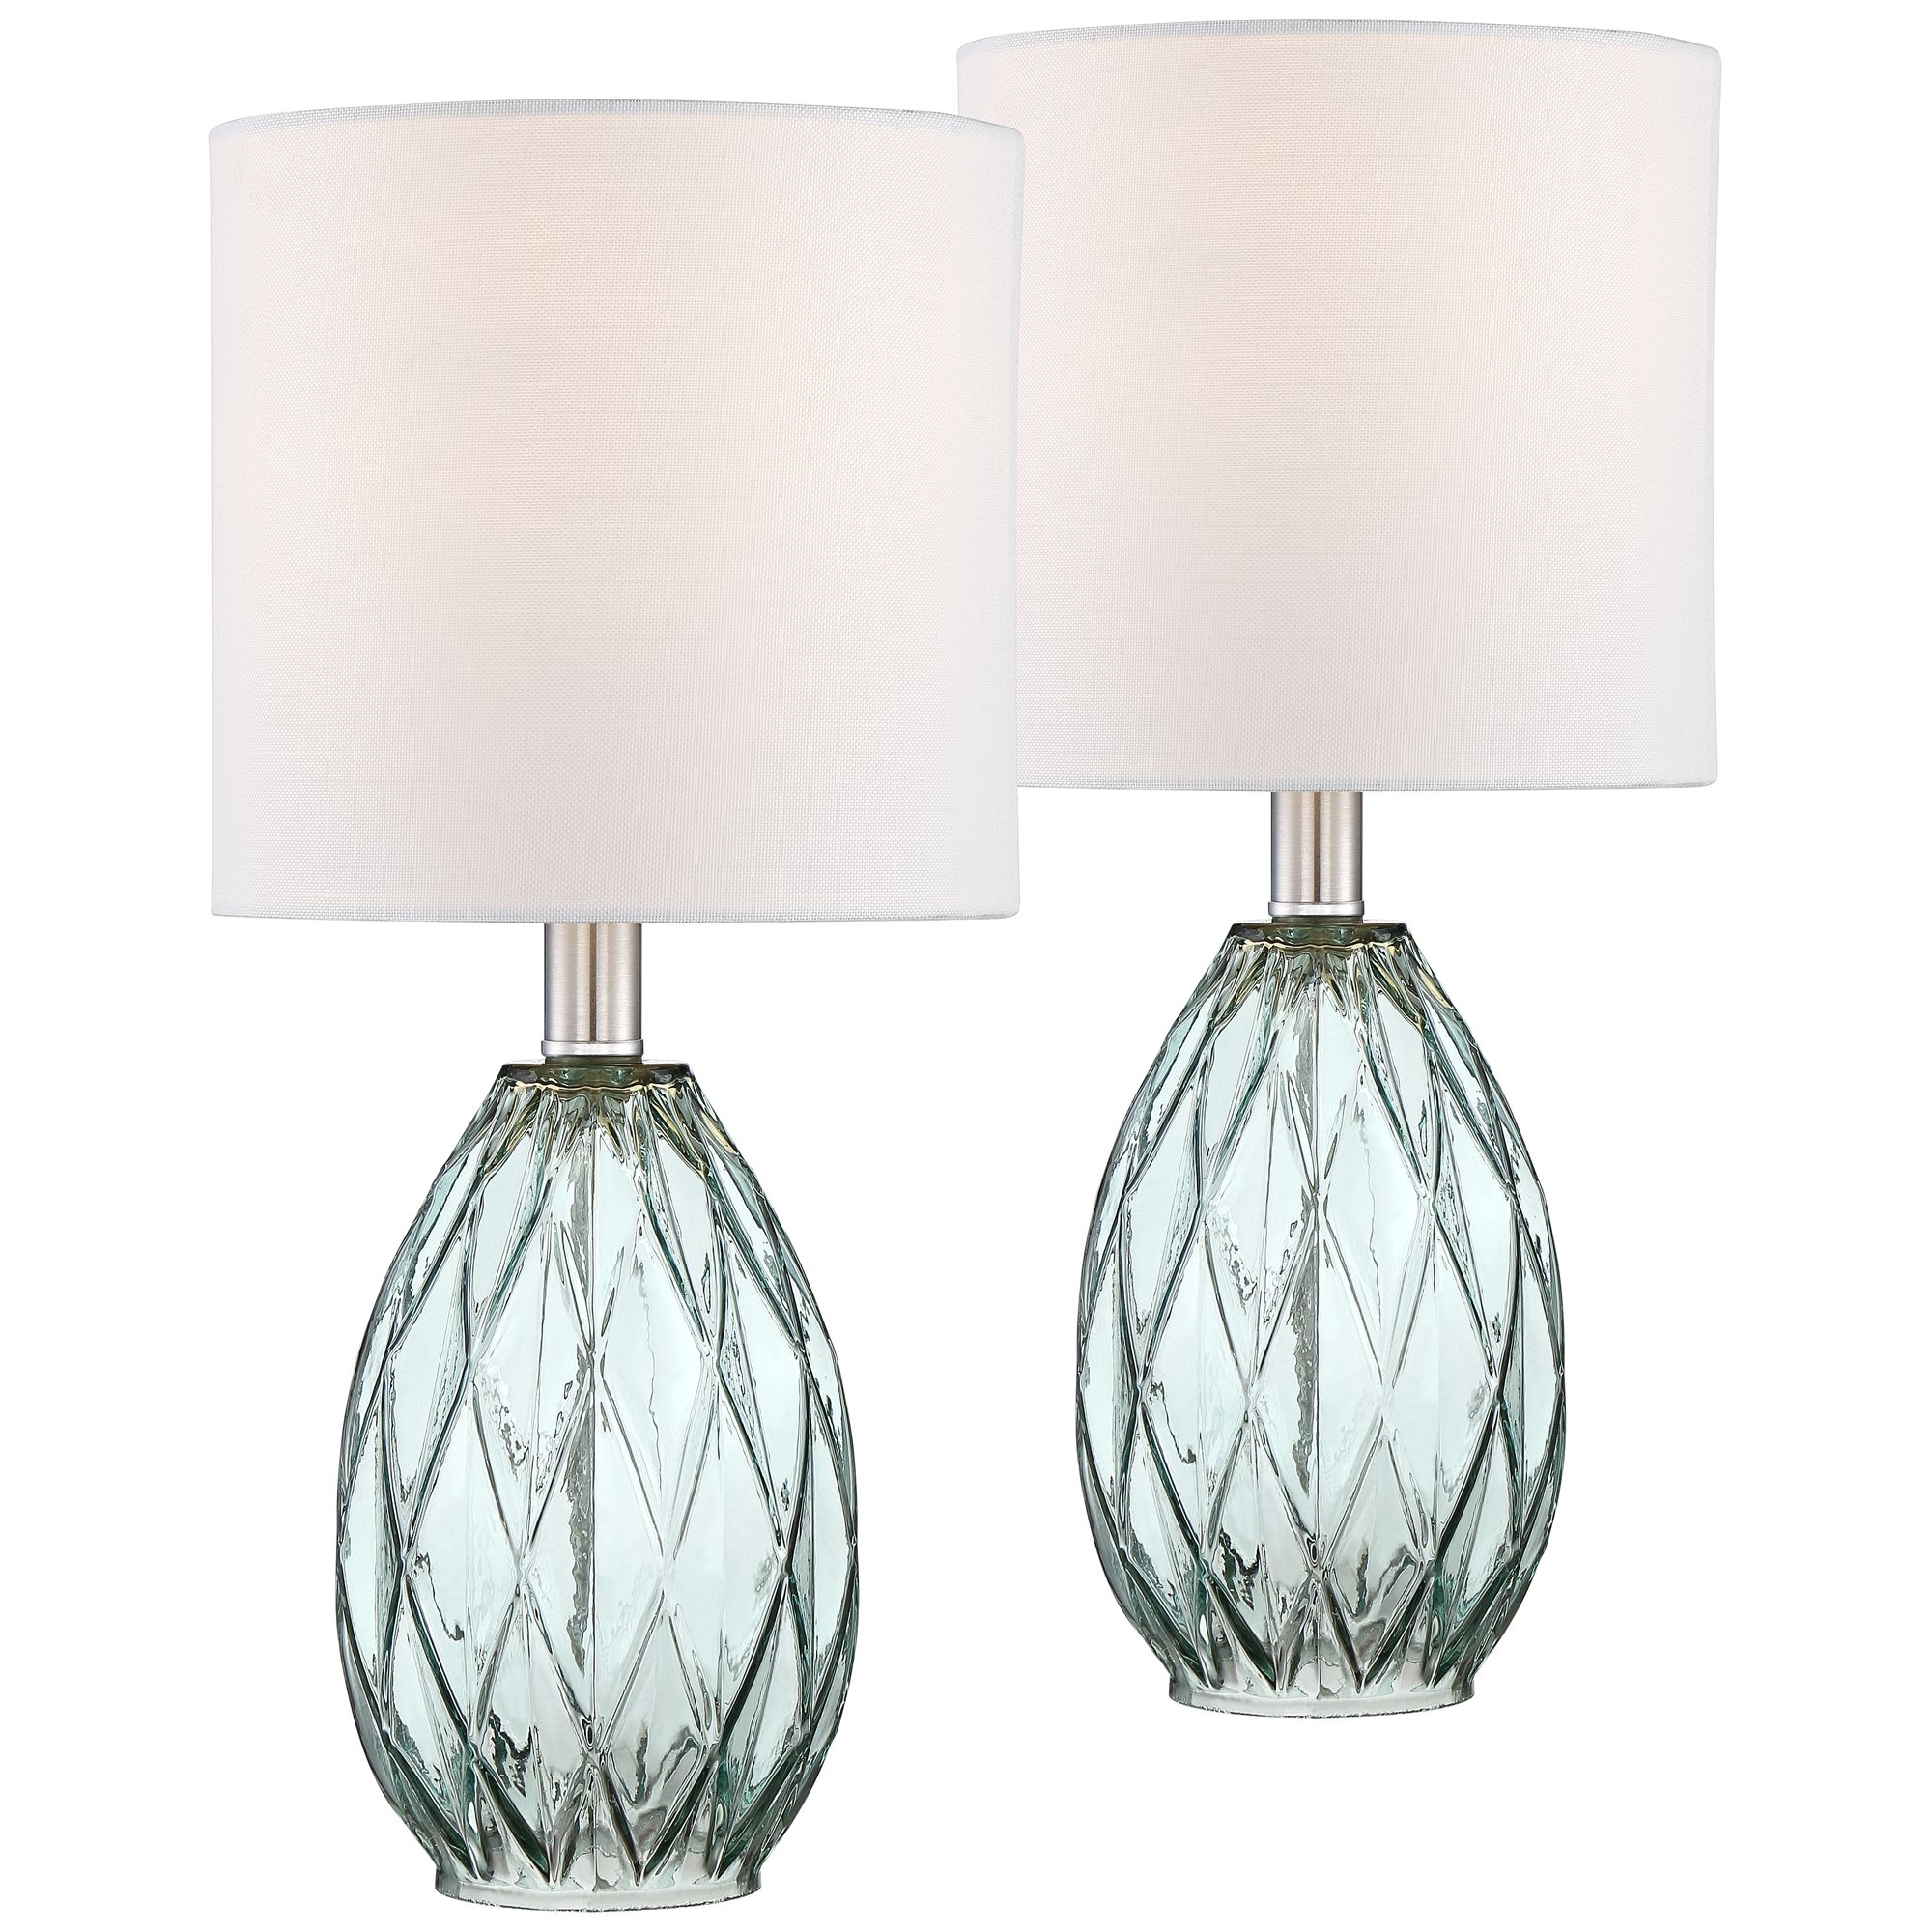 lighting rita blue green glass accent table lamp set lamps departments long bar and chairs homebase outdoor furniture person farm small retro side tall white bedside half moon